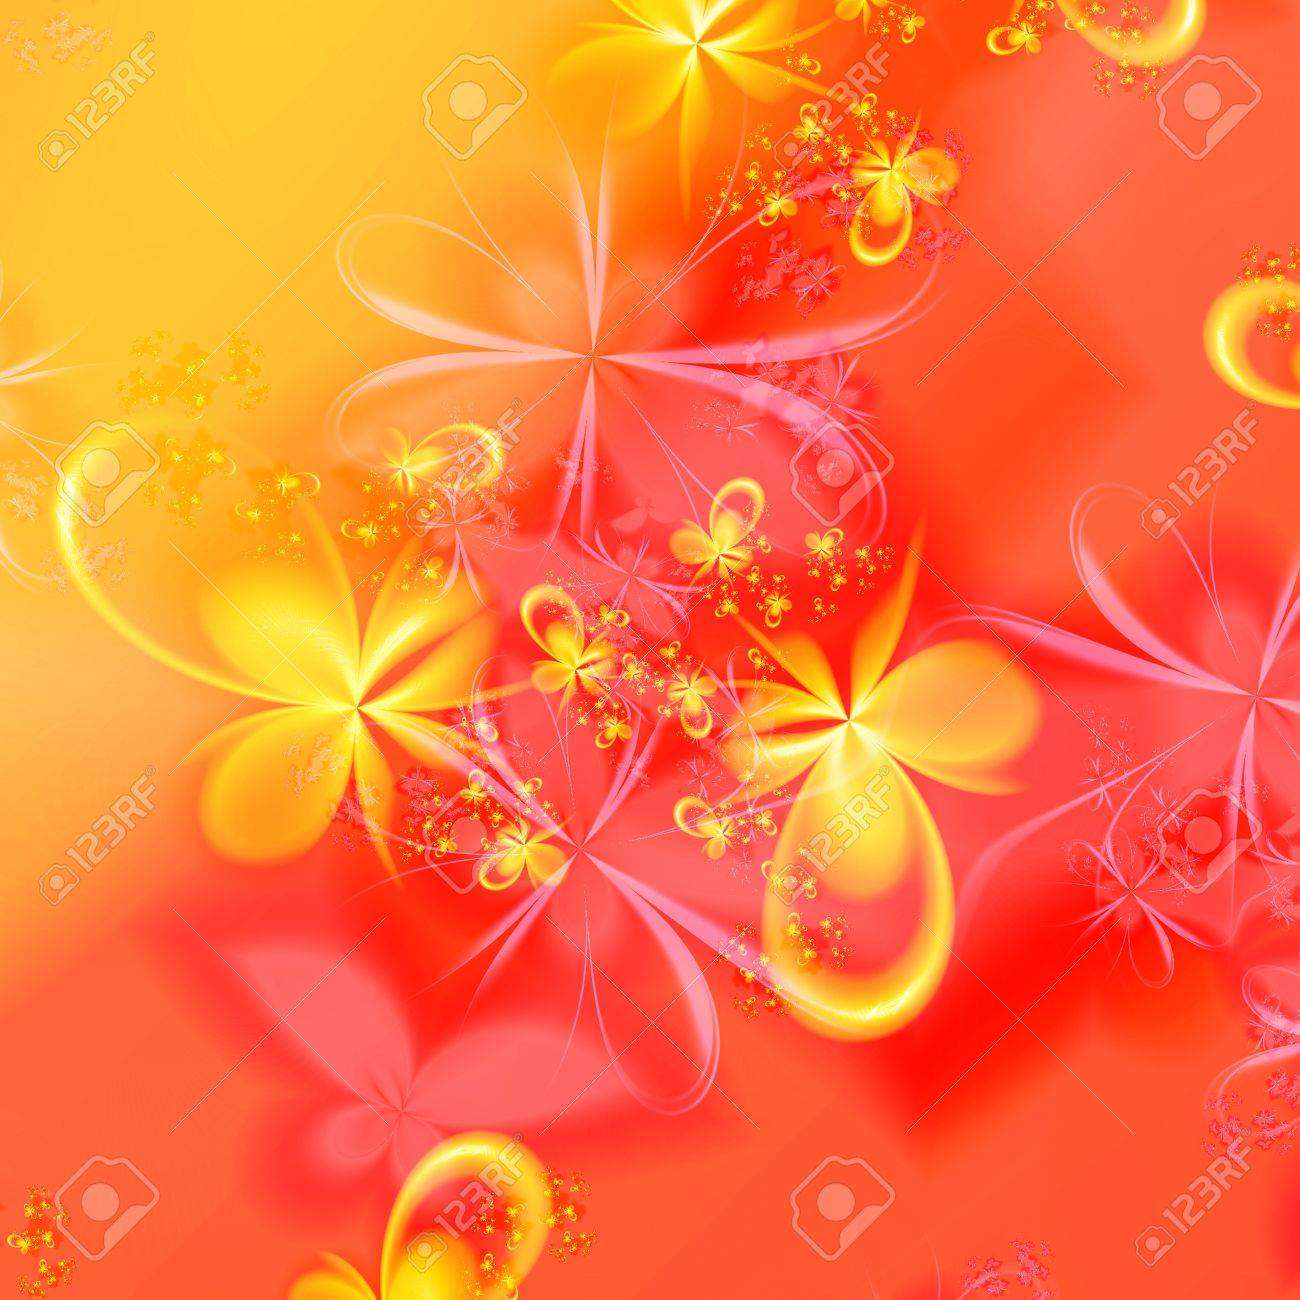 3D rendered abstract of fractal floral patterns - 18660756